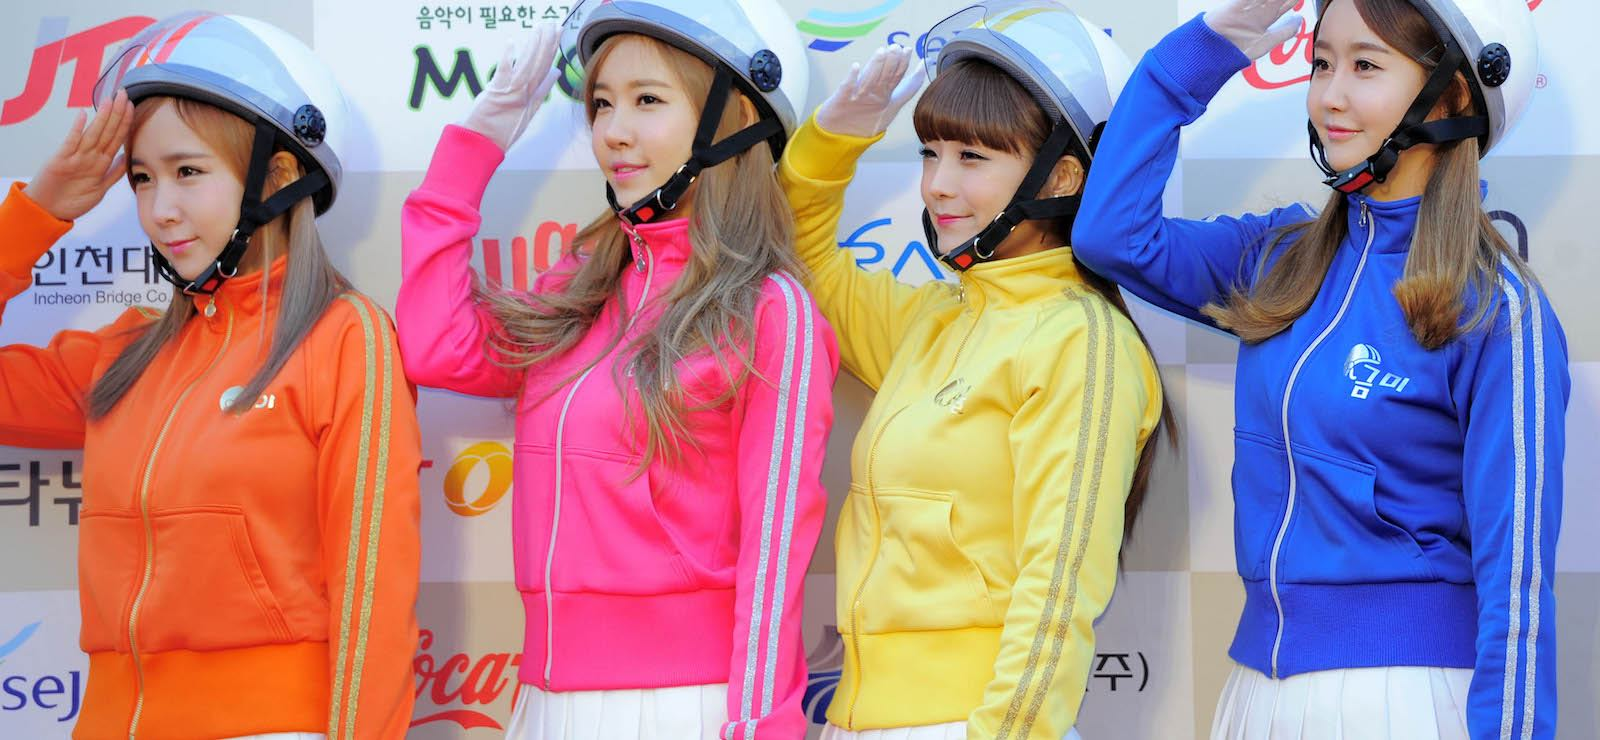 South Korea's Crayon Pop (Photo: Chosunilbo JNS via Getty)